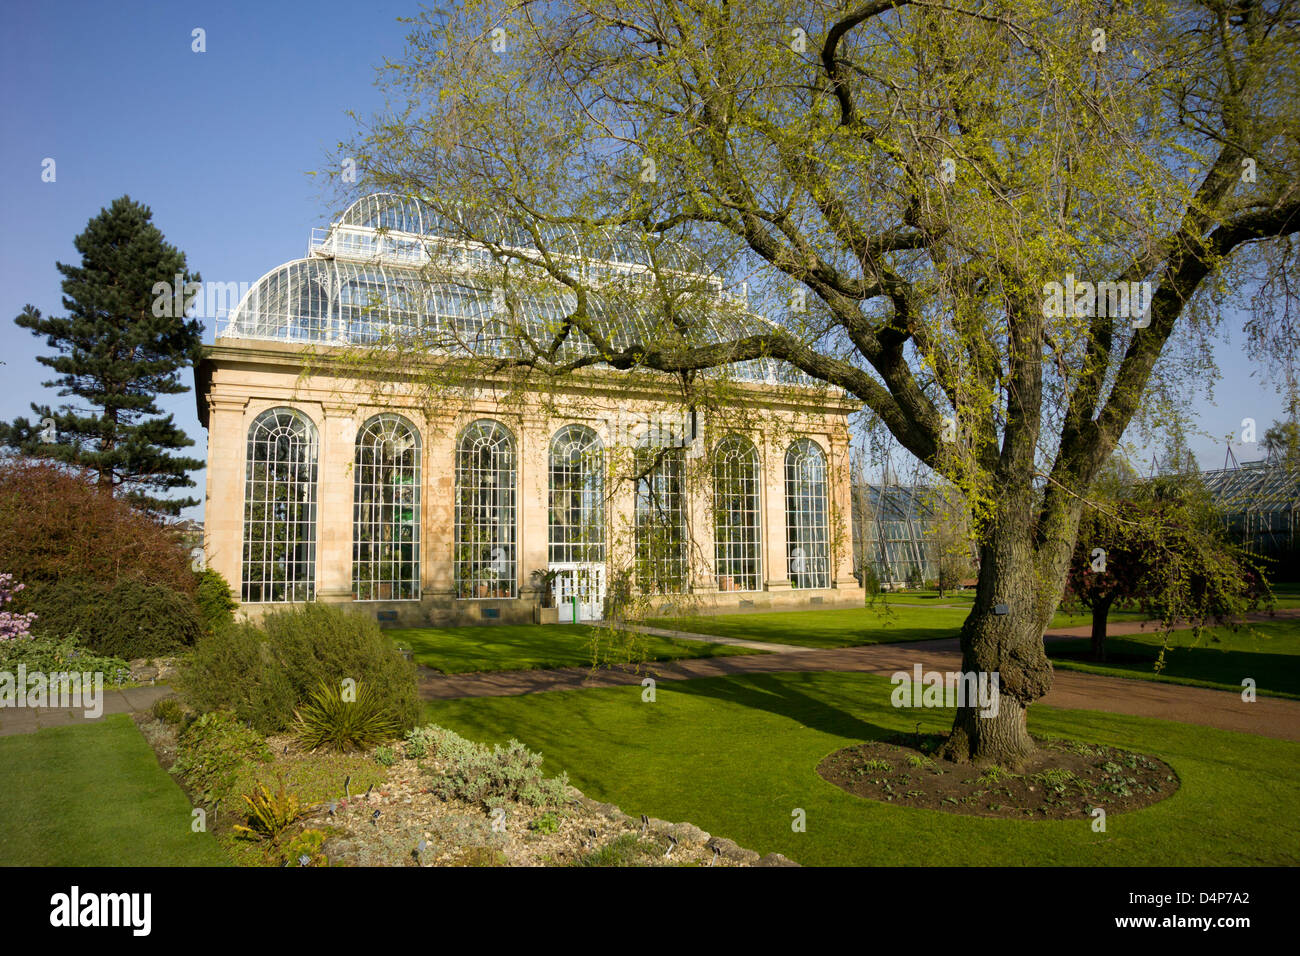 the palm house royal botanic garden - Stock Image